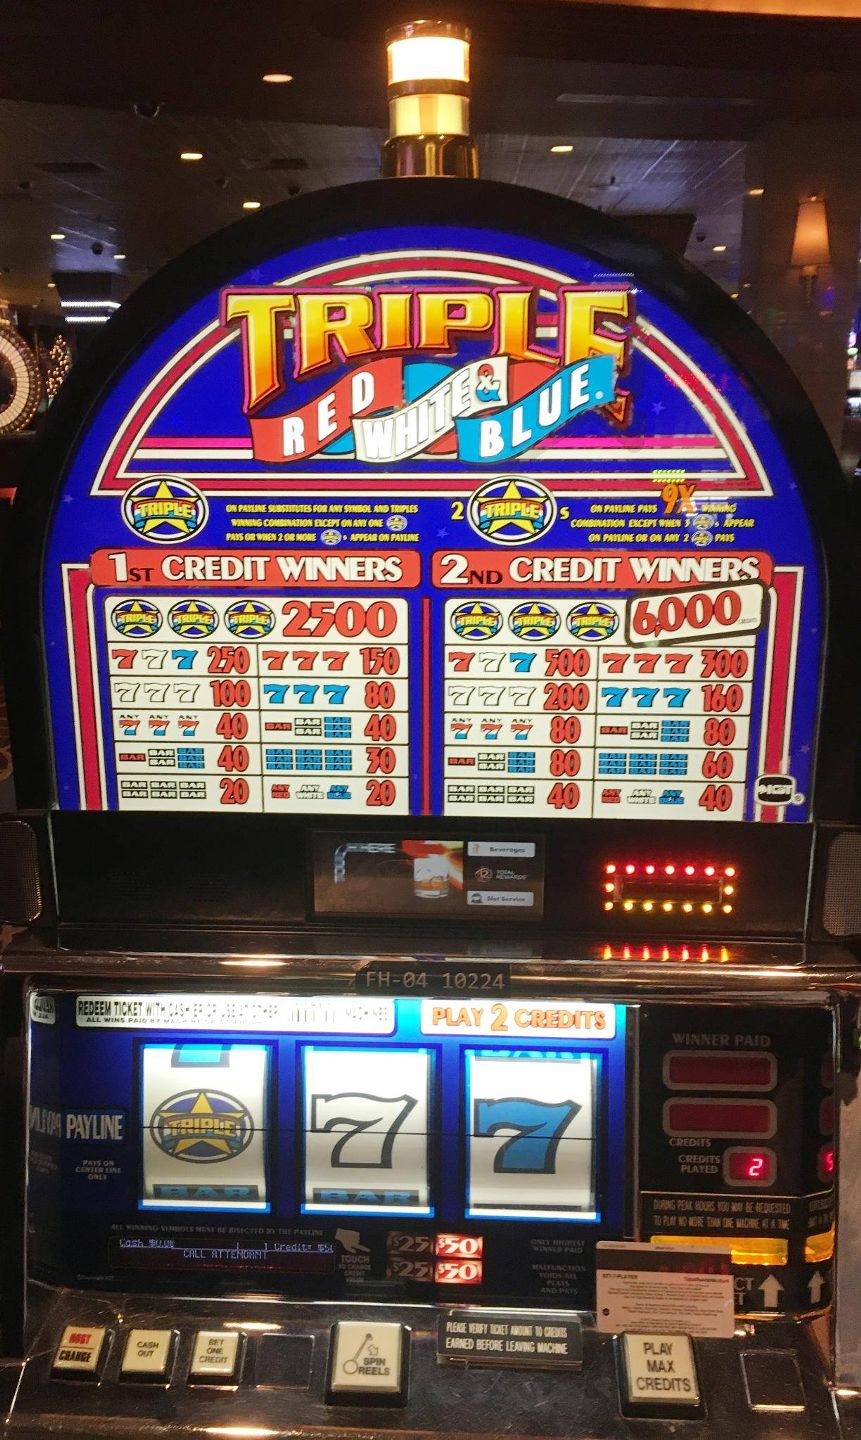 New slot machines in tunica gambling community benefit fund funding guidelines